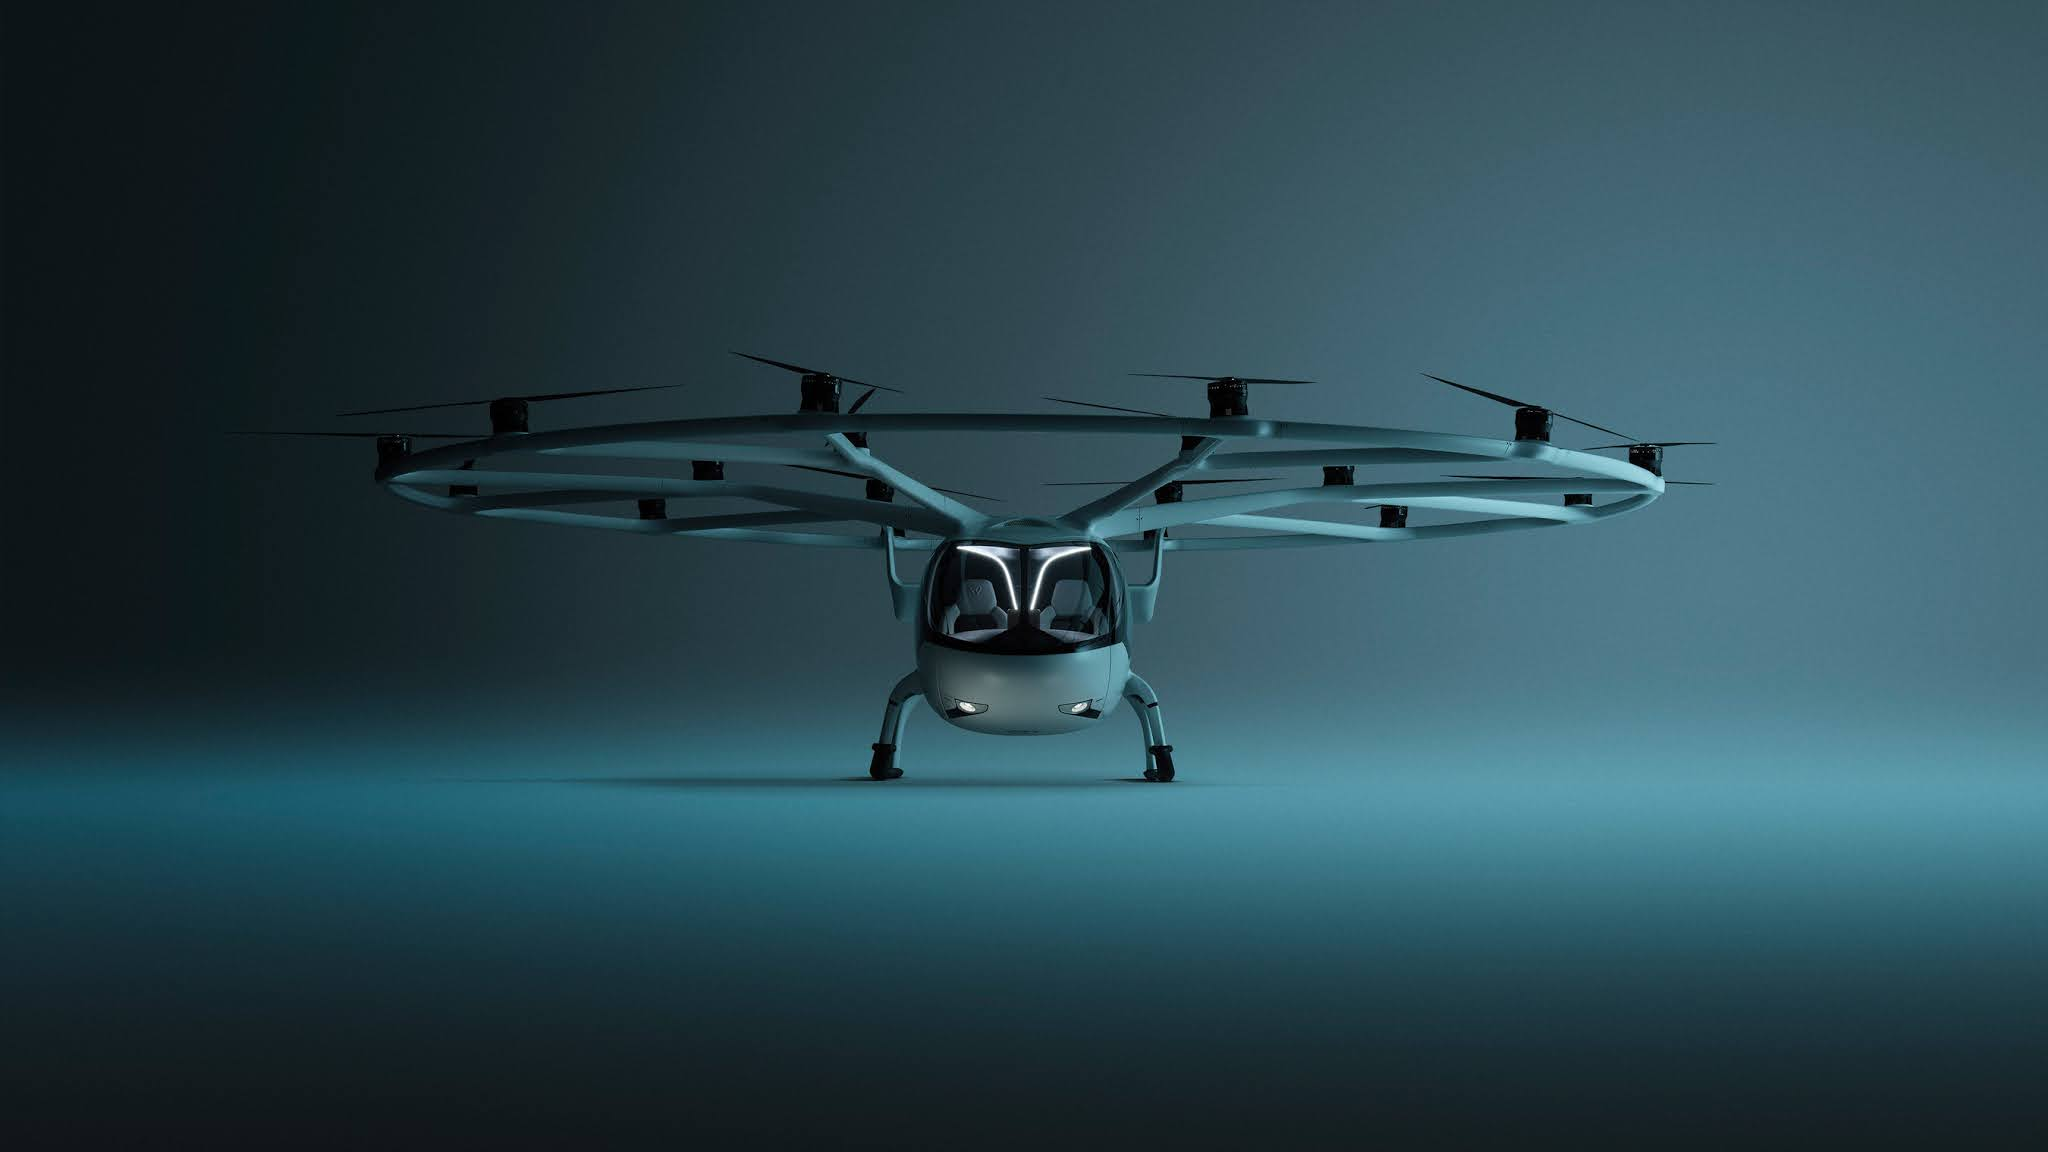 Volocopter Raises €200 Million in Series D Funding